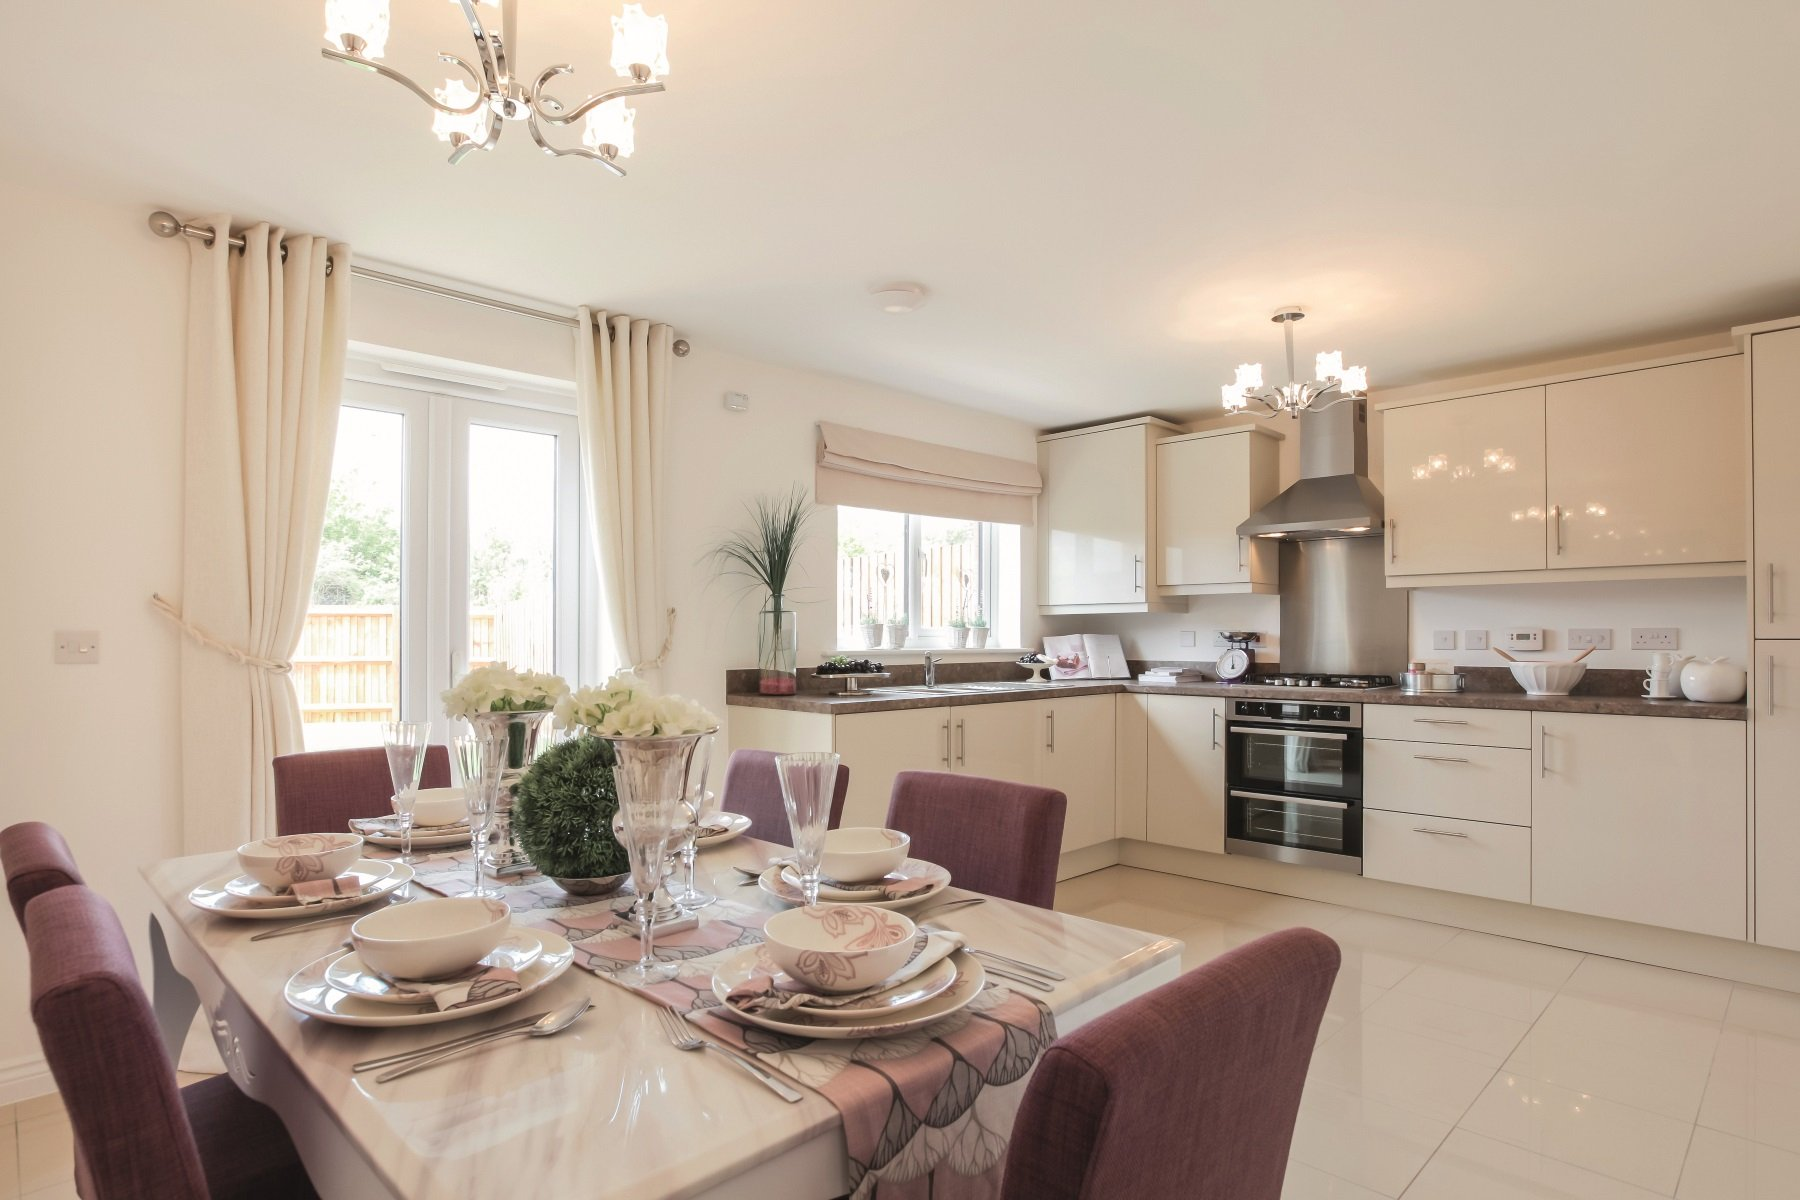 TW Exeter - Hele Park - Oakham example kitchen 3